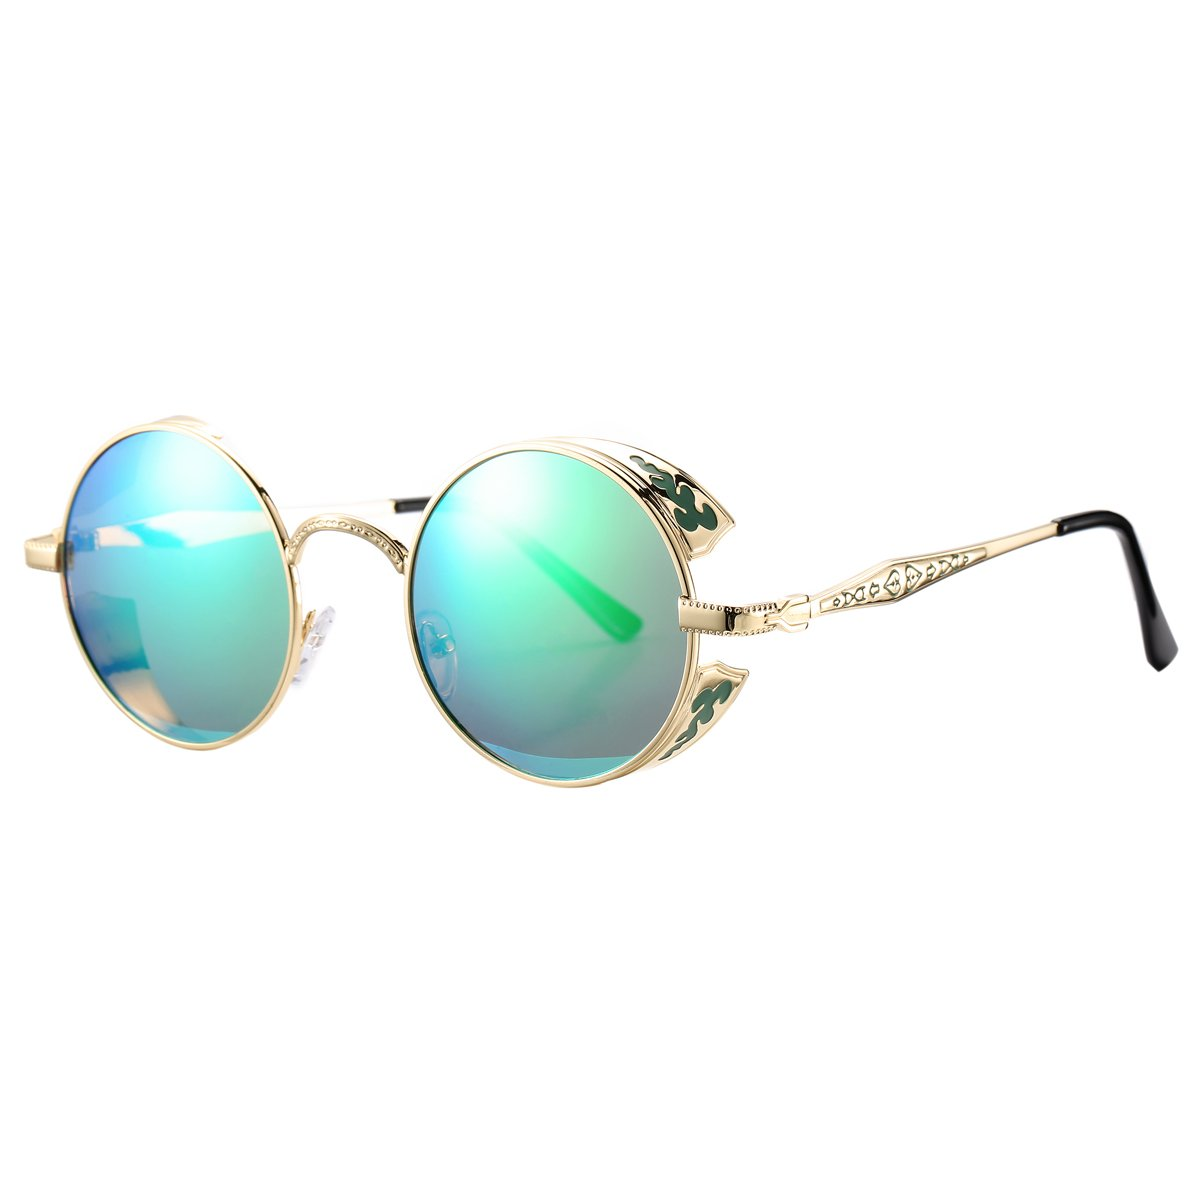 Pro Acme Retro Polarized Round Sunglasses Unisex Metal Frame Steampunk Glasses (Gold Frame/Green Mirrored Lens)